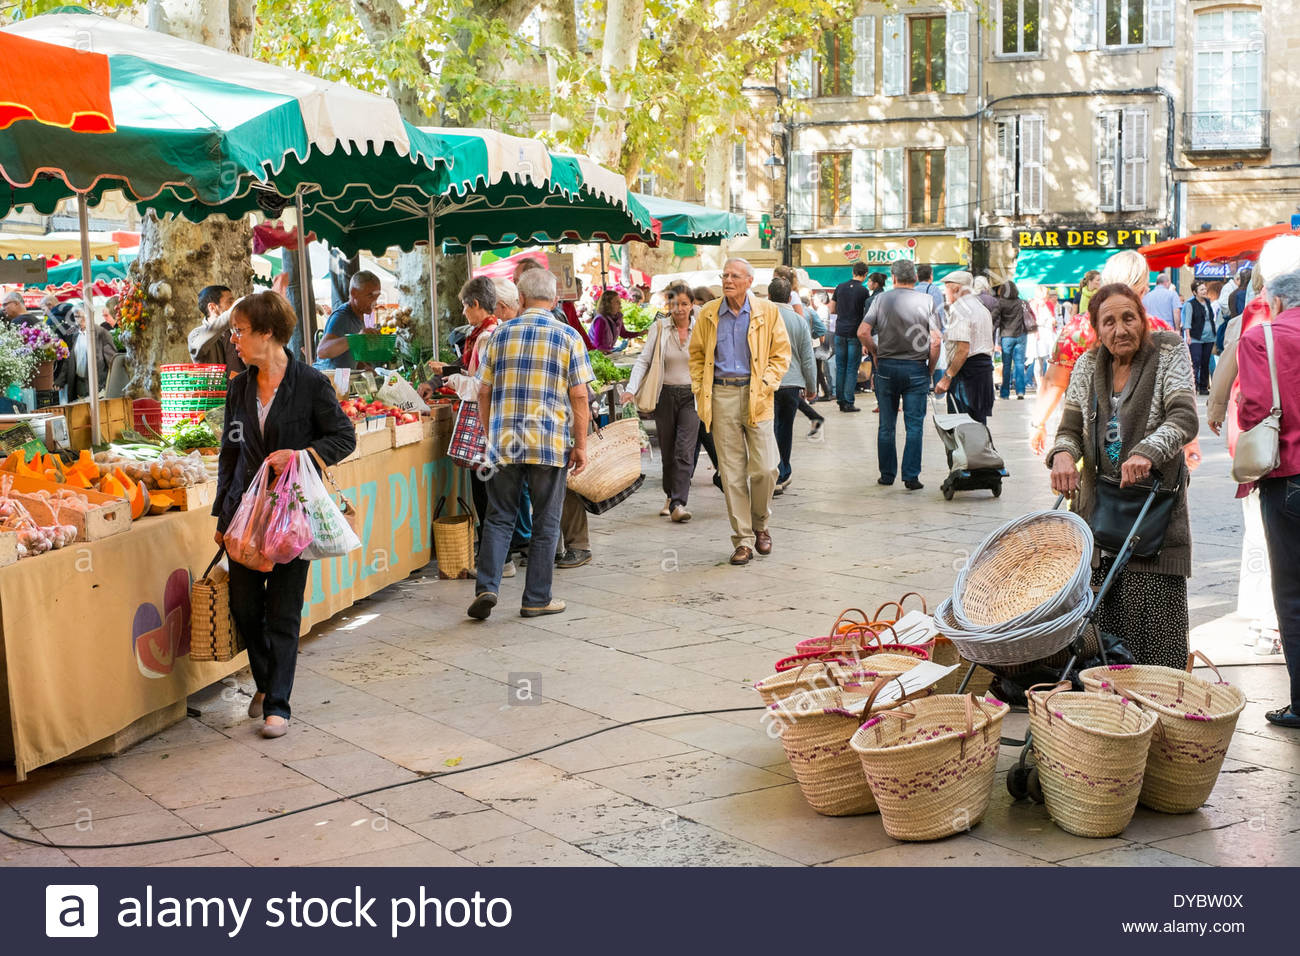 Woman selling baskets at the morning farmer's market on Place Richelme, Aix-en-Provence, France - Stock Image